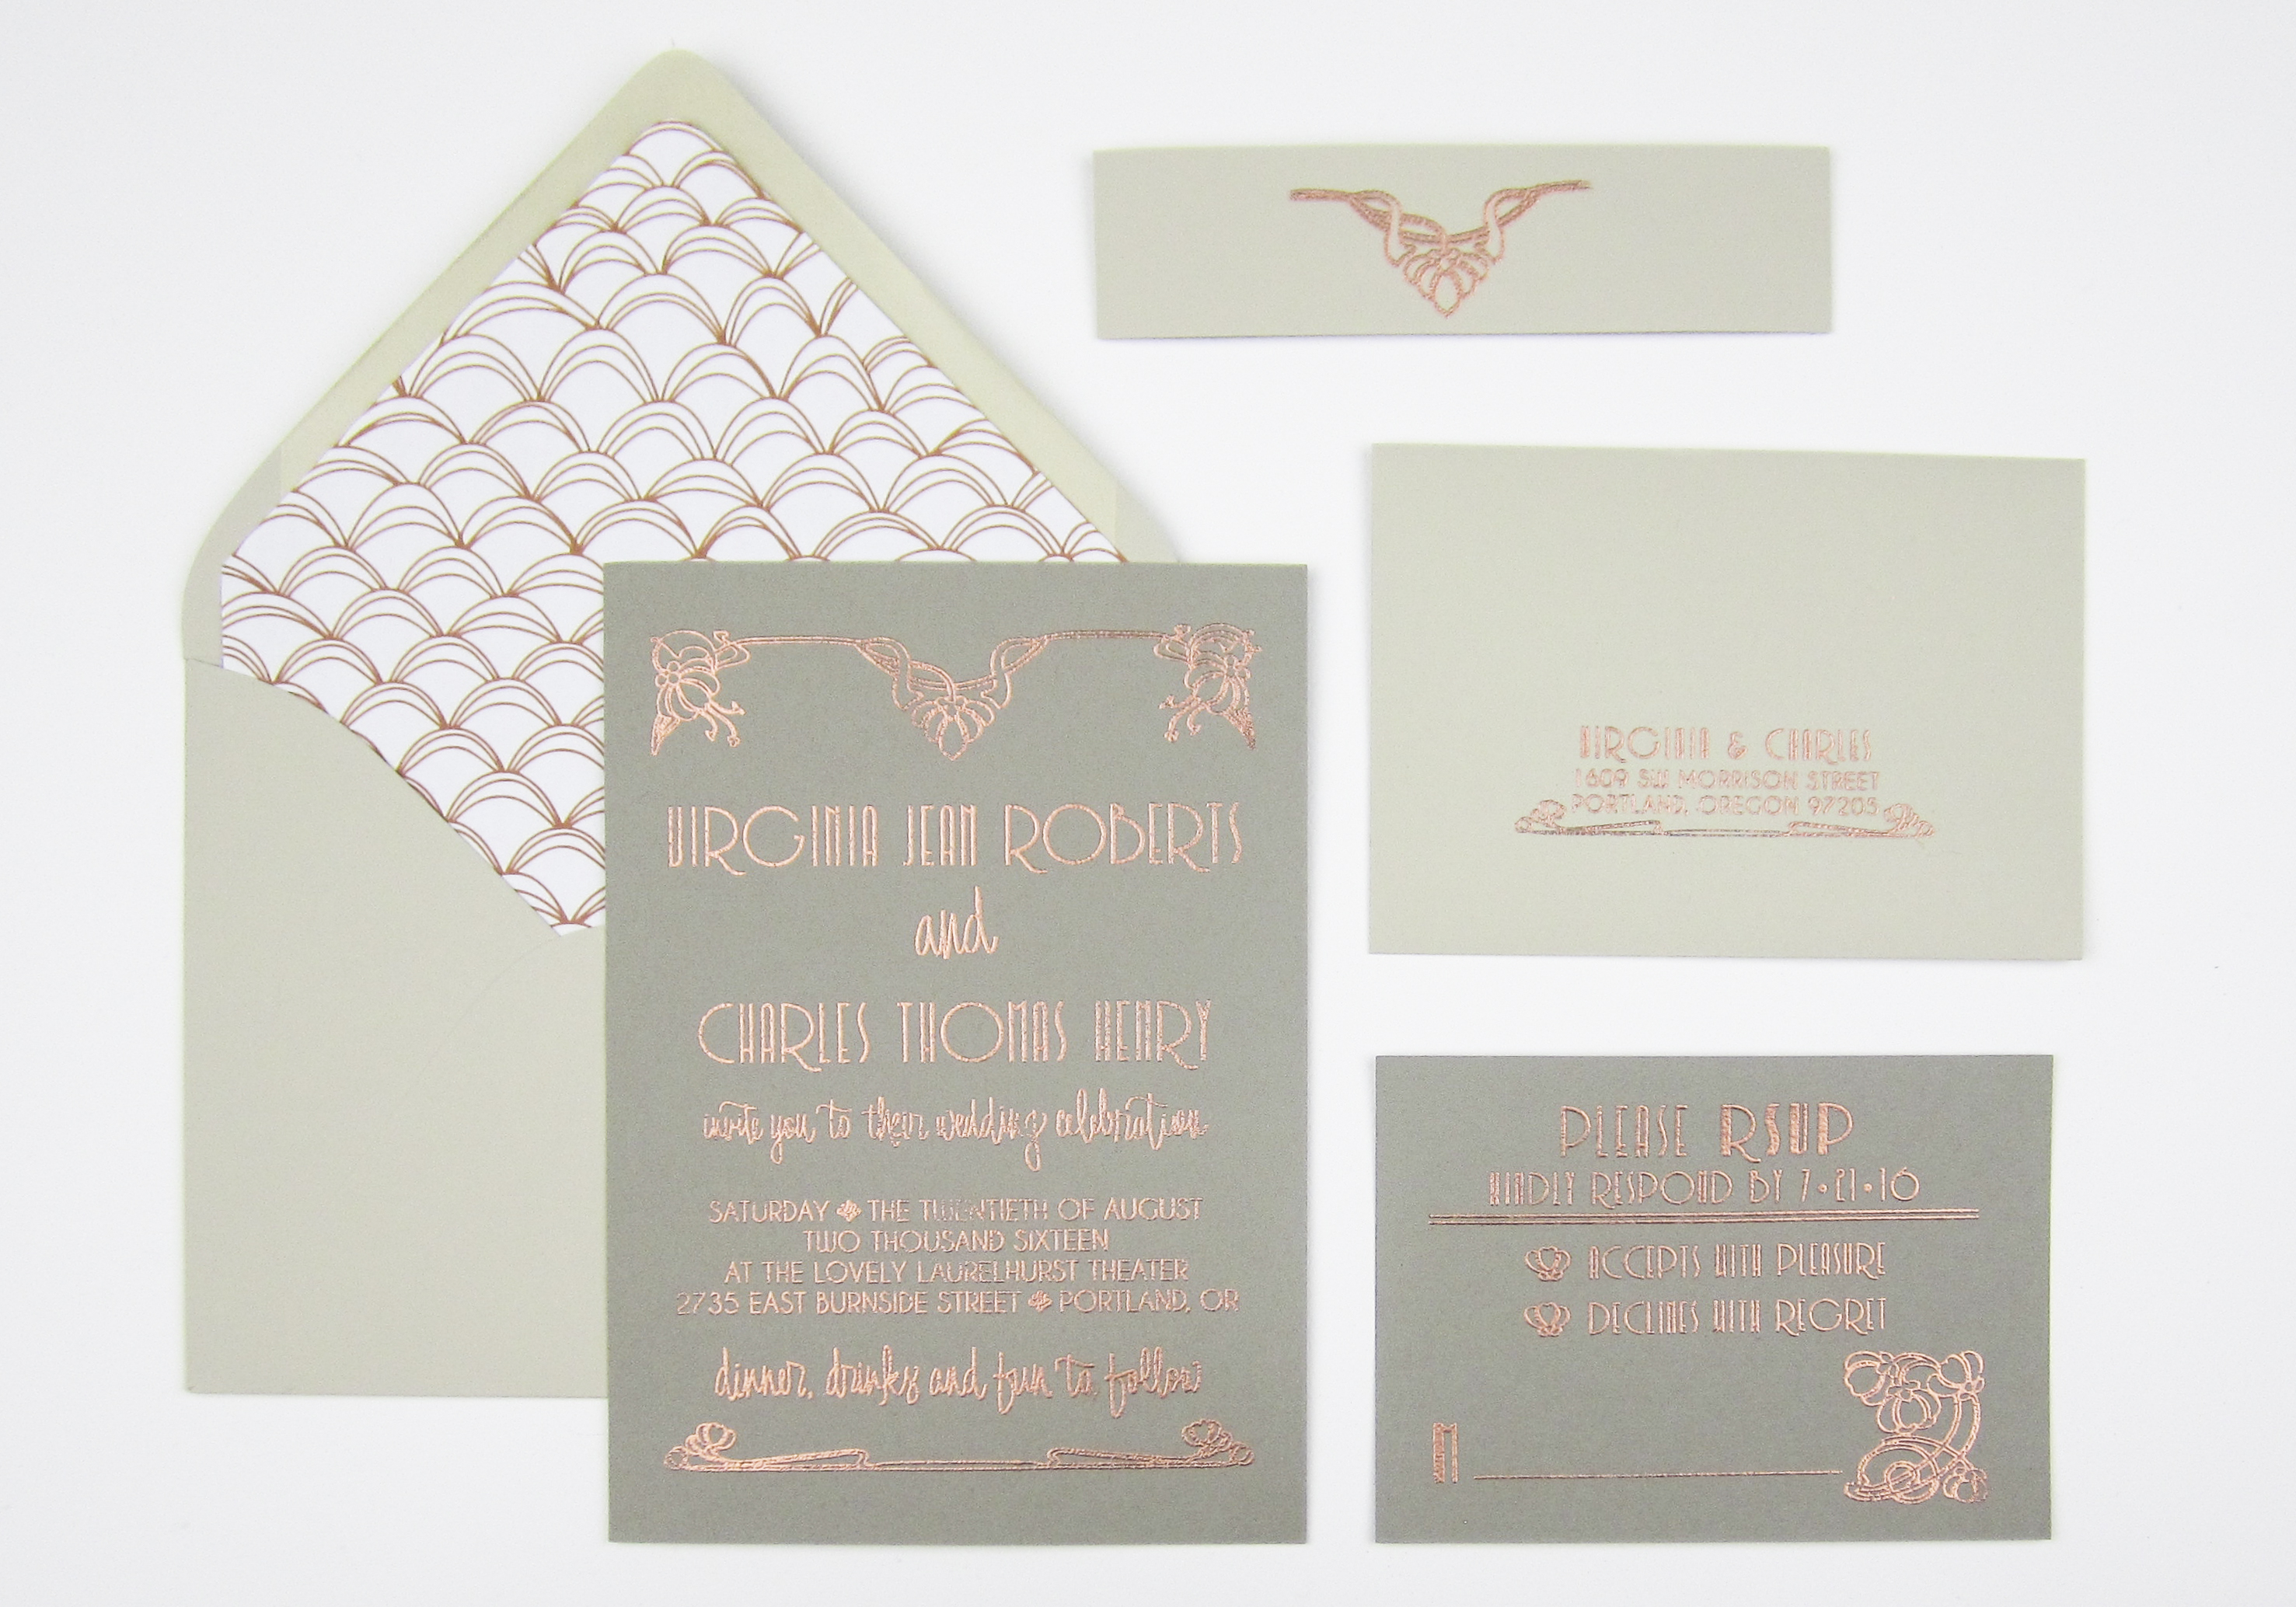 Styling Paper Sushi\'s Art Deco Wedding Suite - PaperSushi